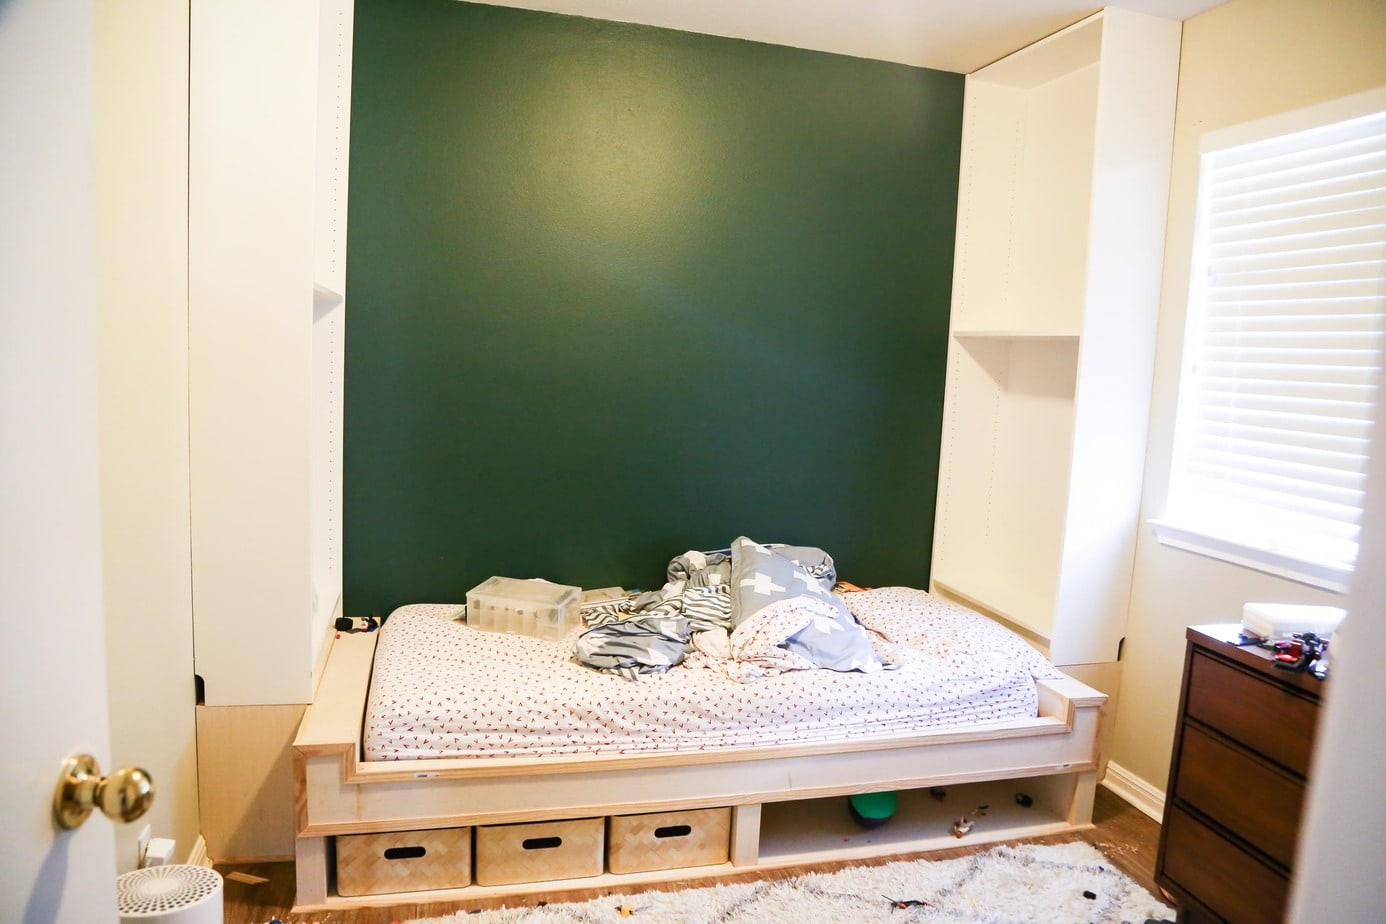 Unpainted DIY built in shelves and bed